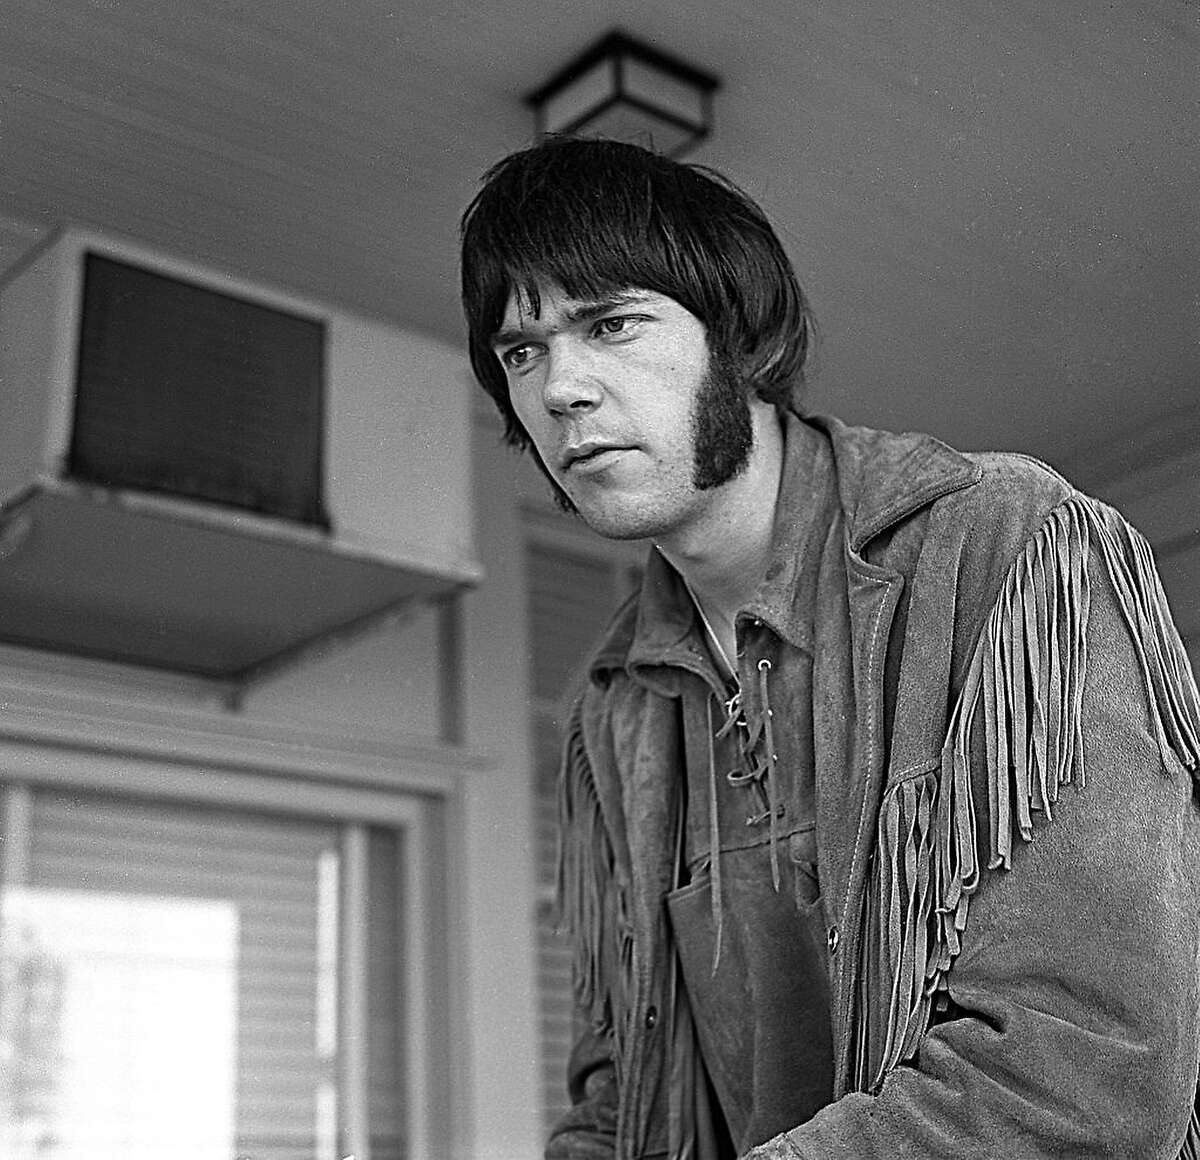 Neil Young, lead guitarist of Buffalo Springfield, as a young man at home in Los Angeles in 1967.